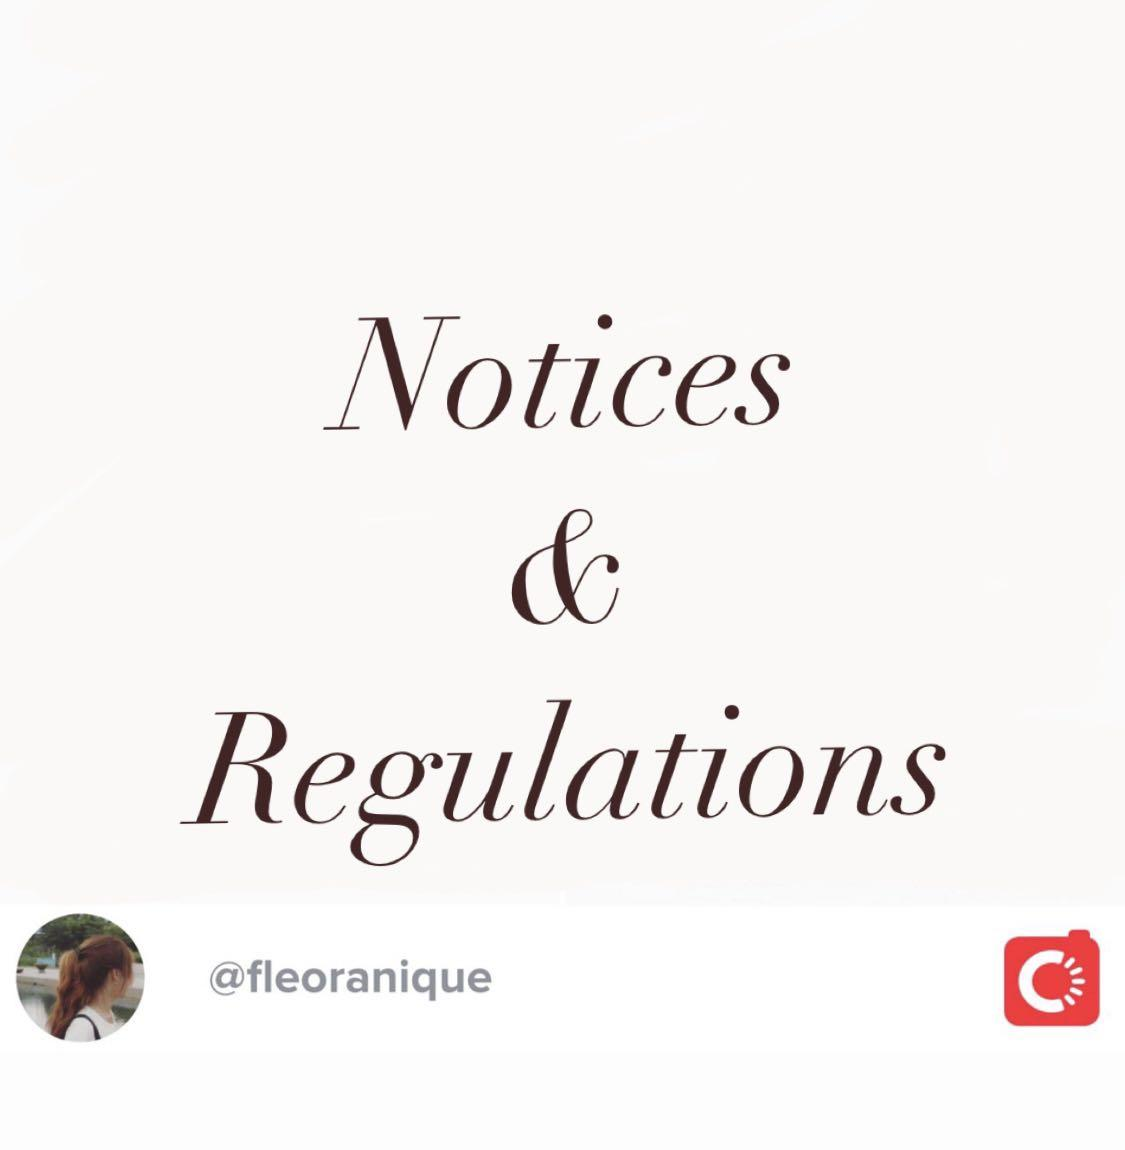 Notices and Regulations for shoppers